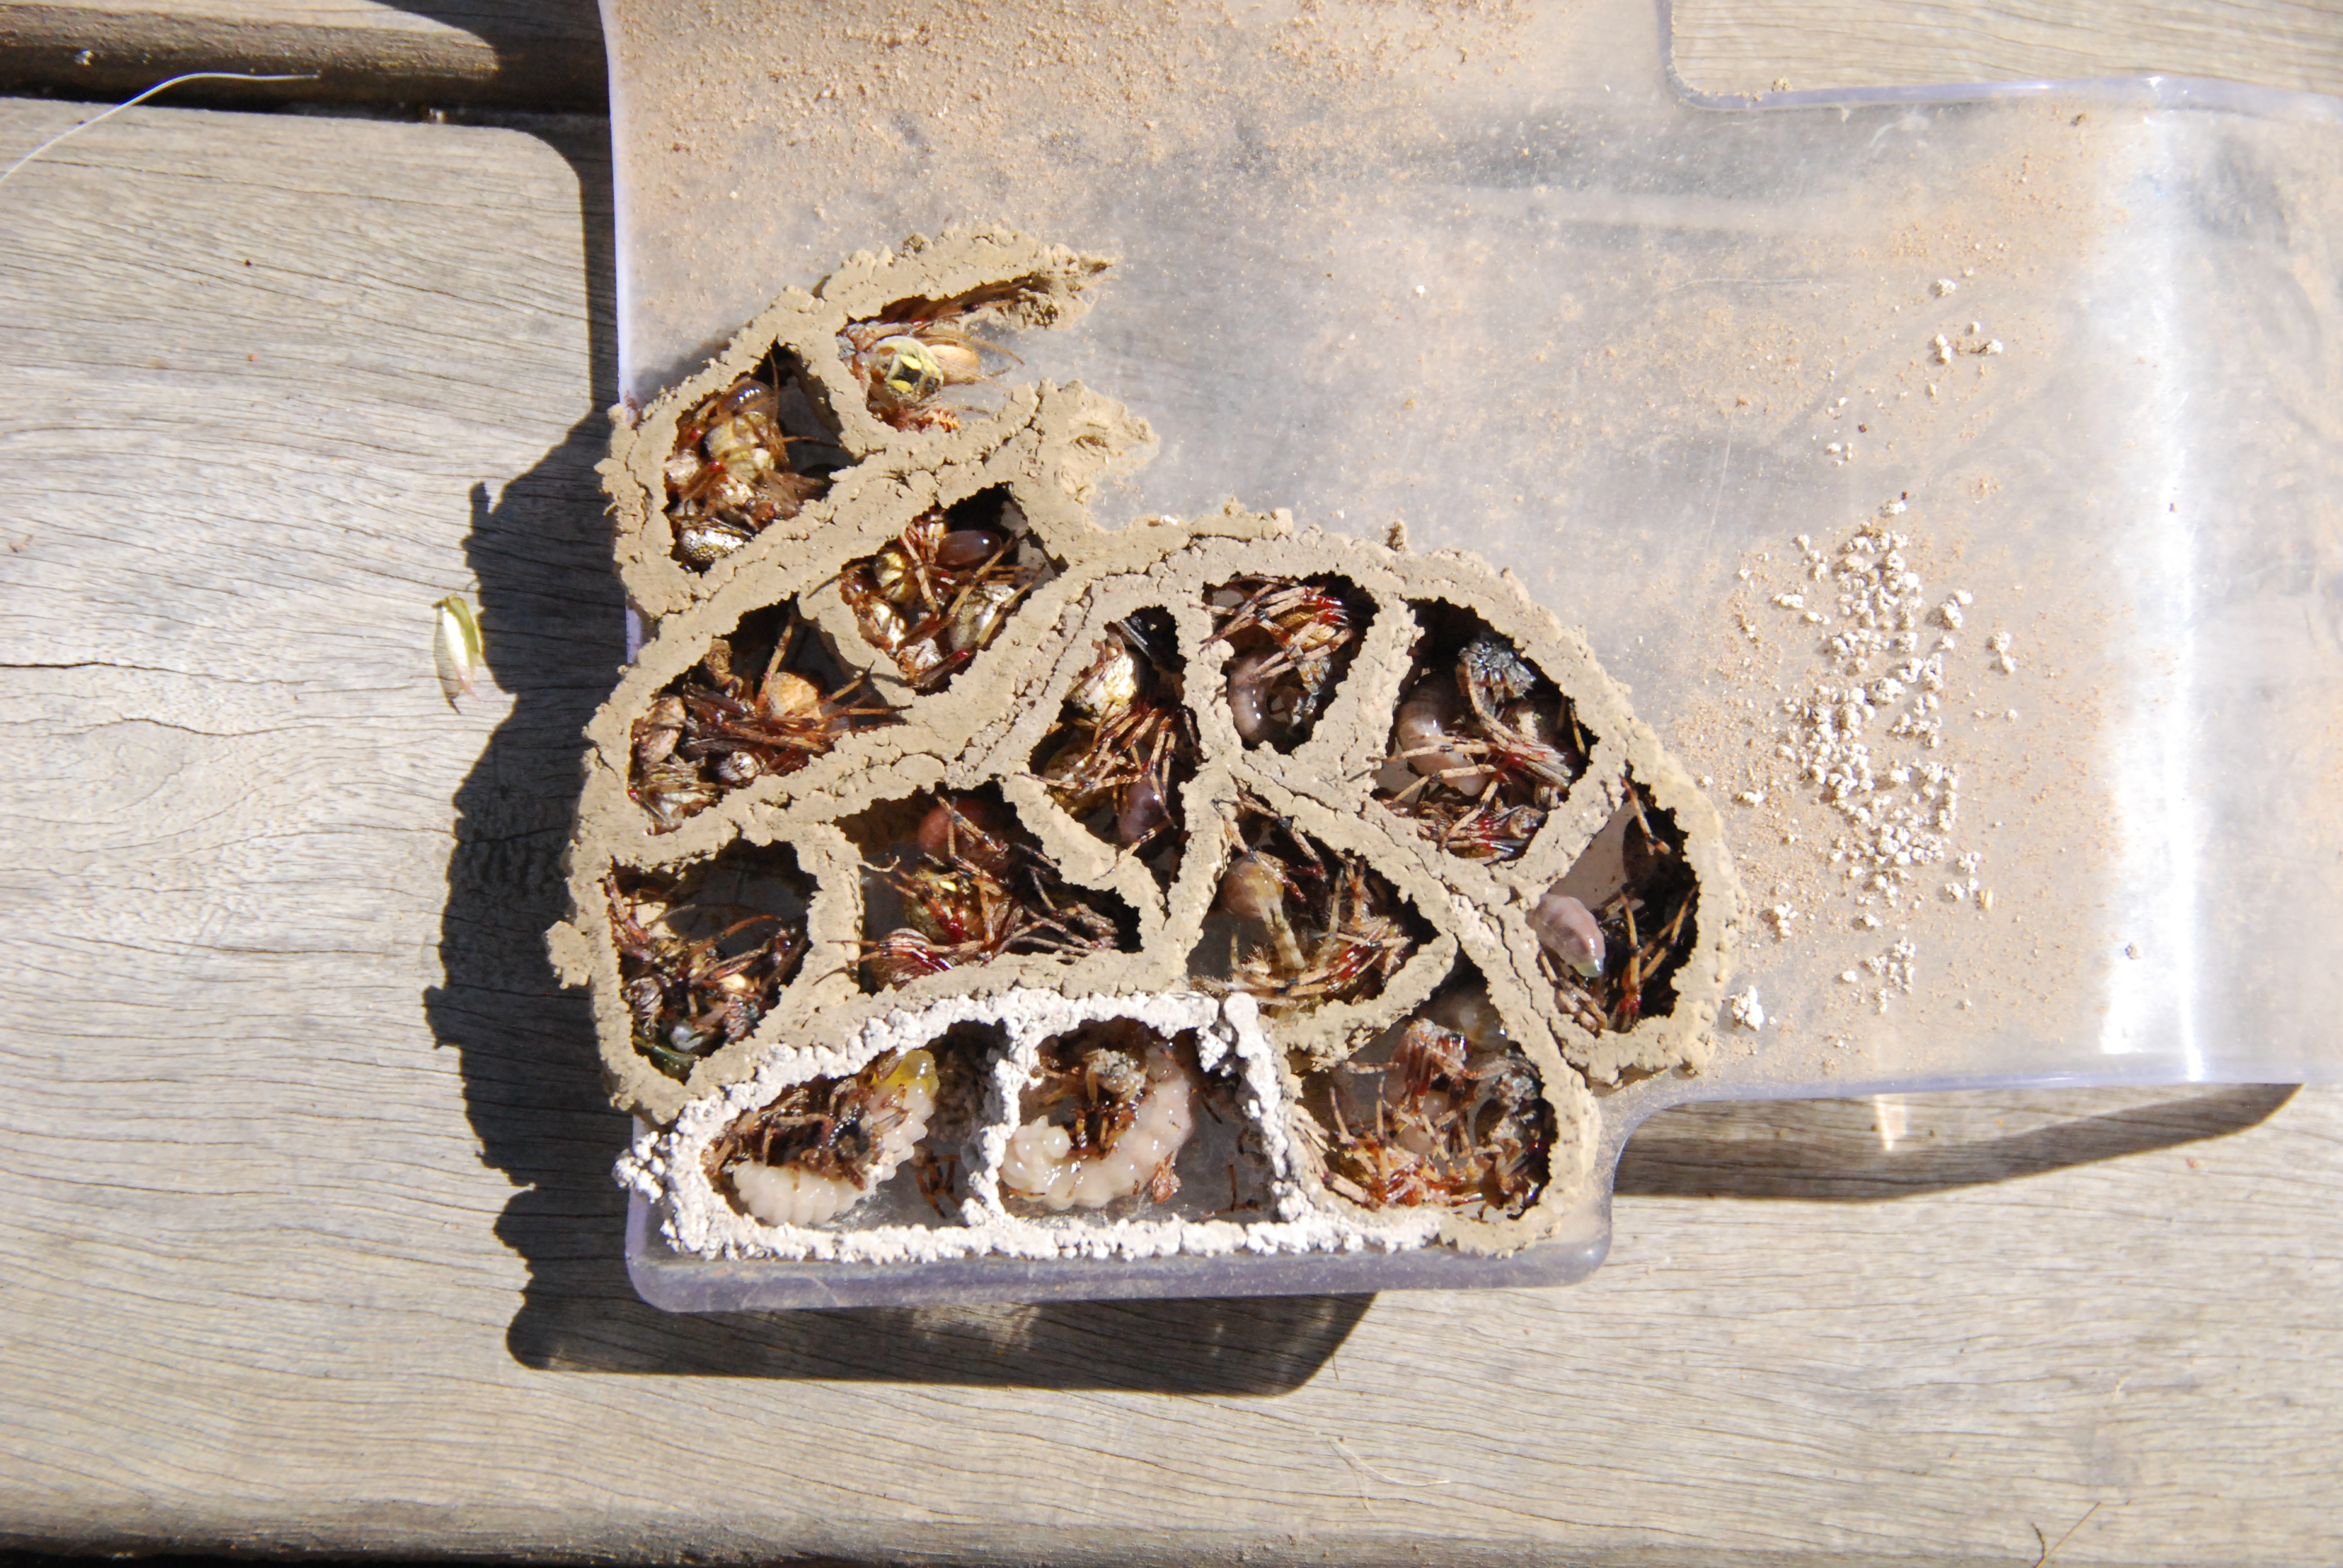 file spider wasp nest with larvae of various ages feeding on spiders